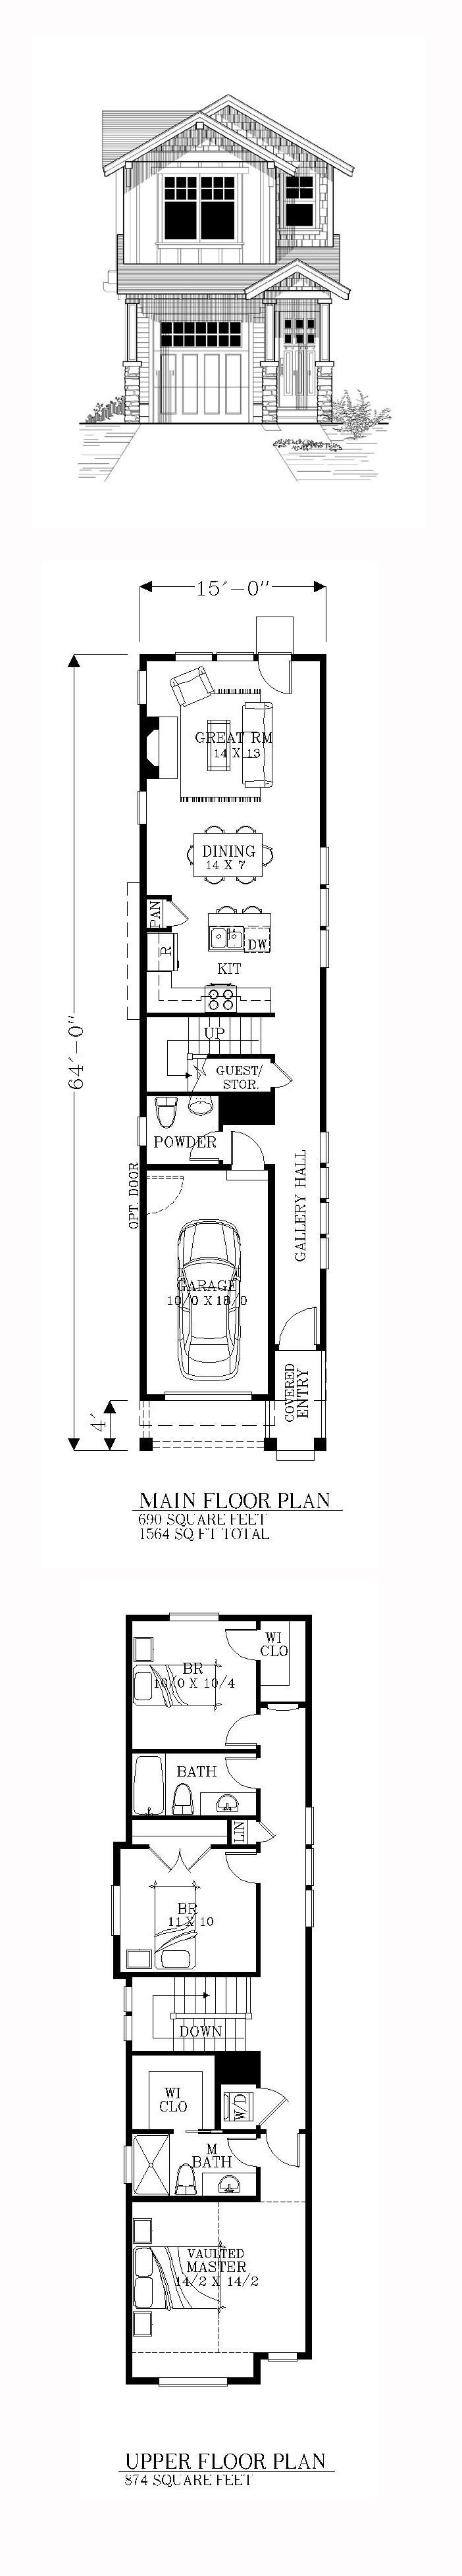 54 best Narrow Lot Home Plans images on Pinterest | Narrow lot house ...